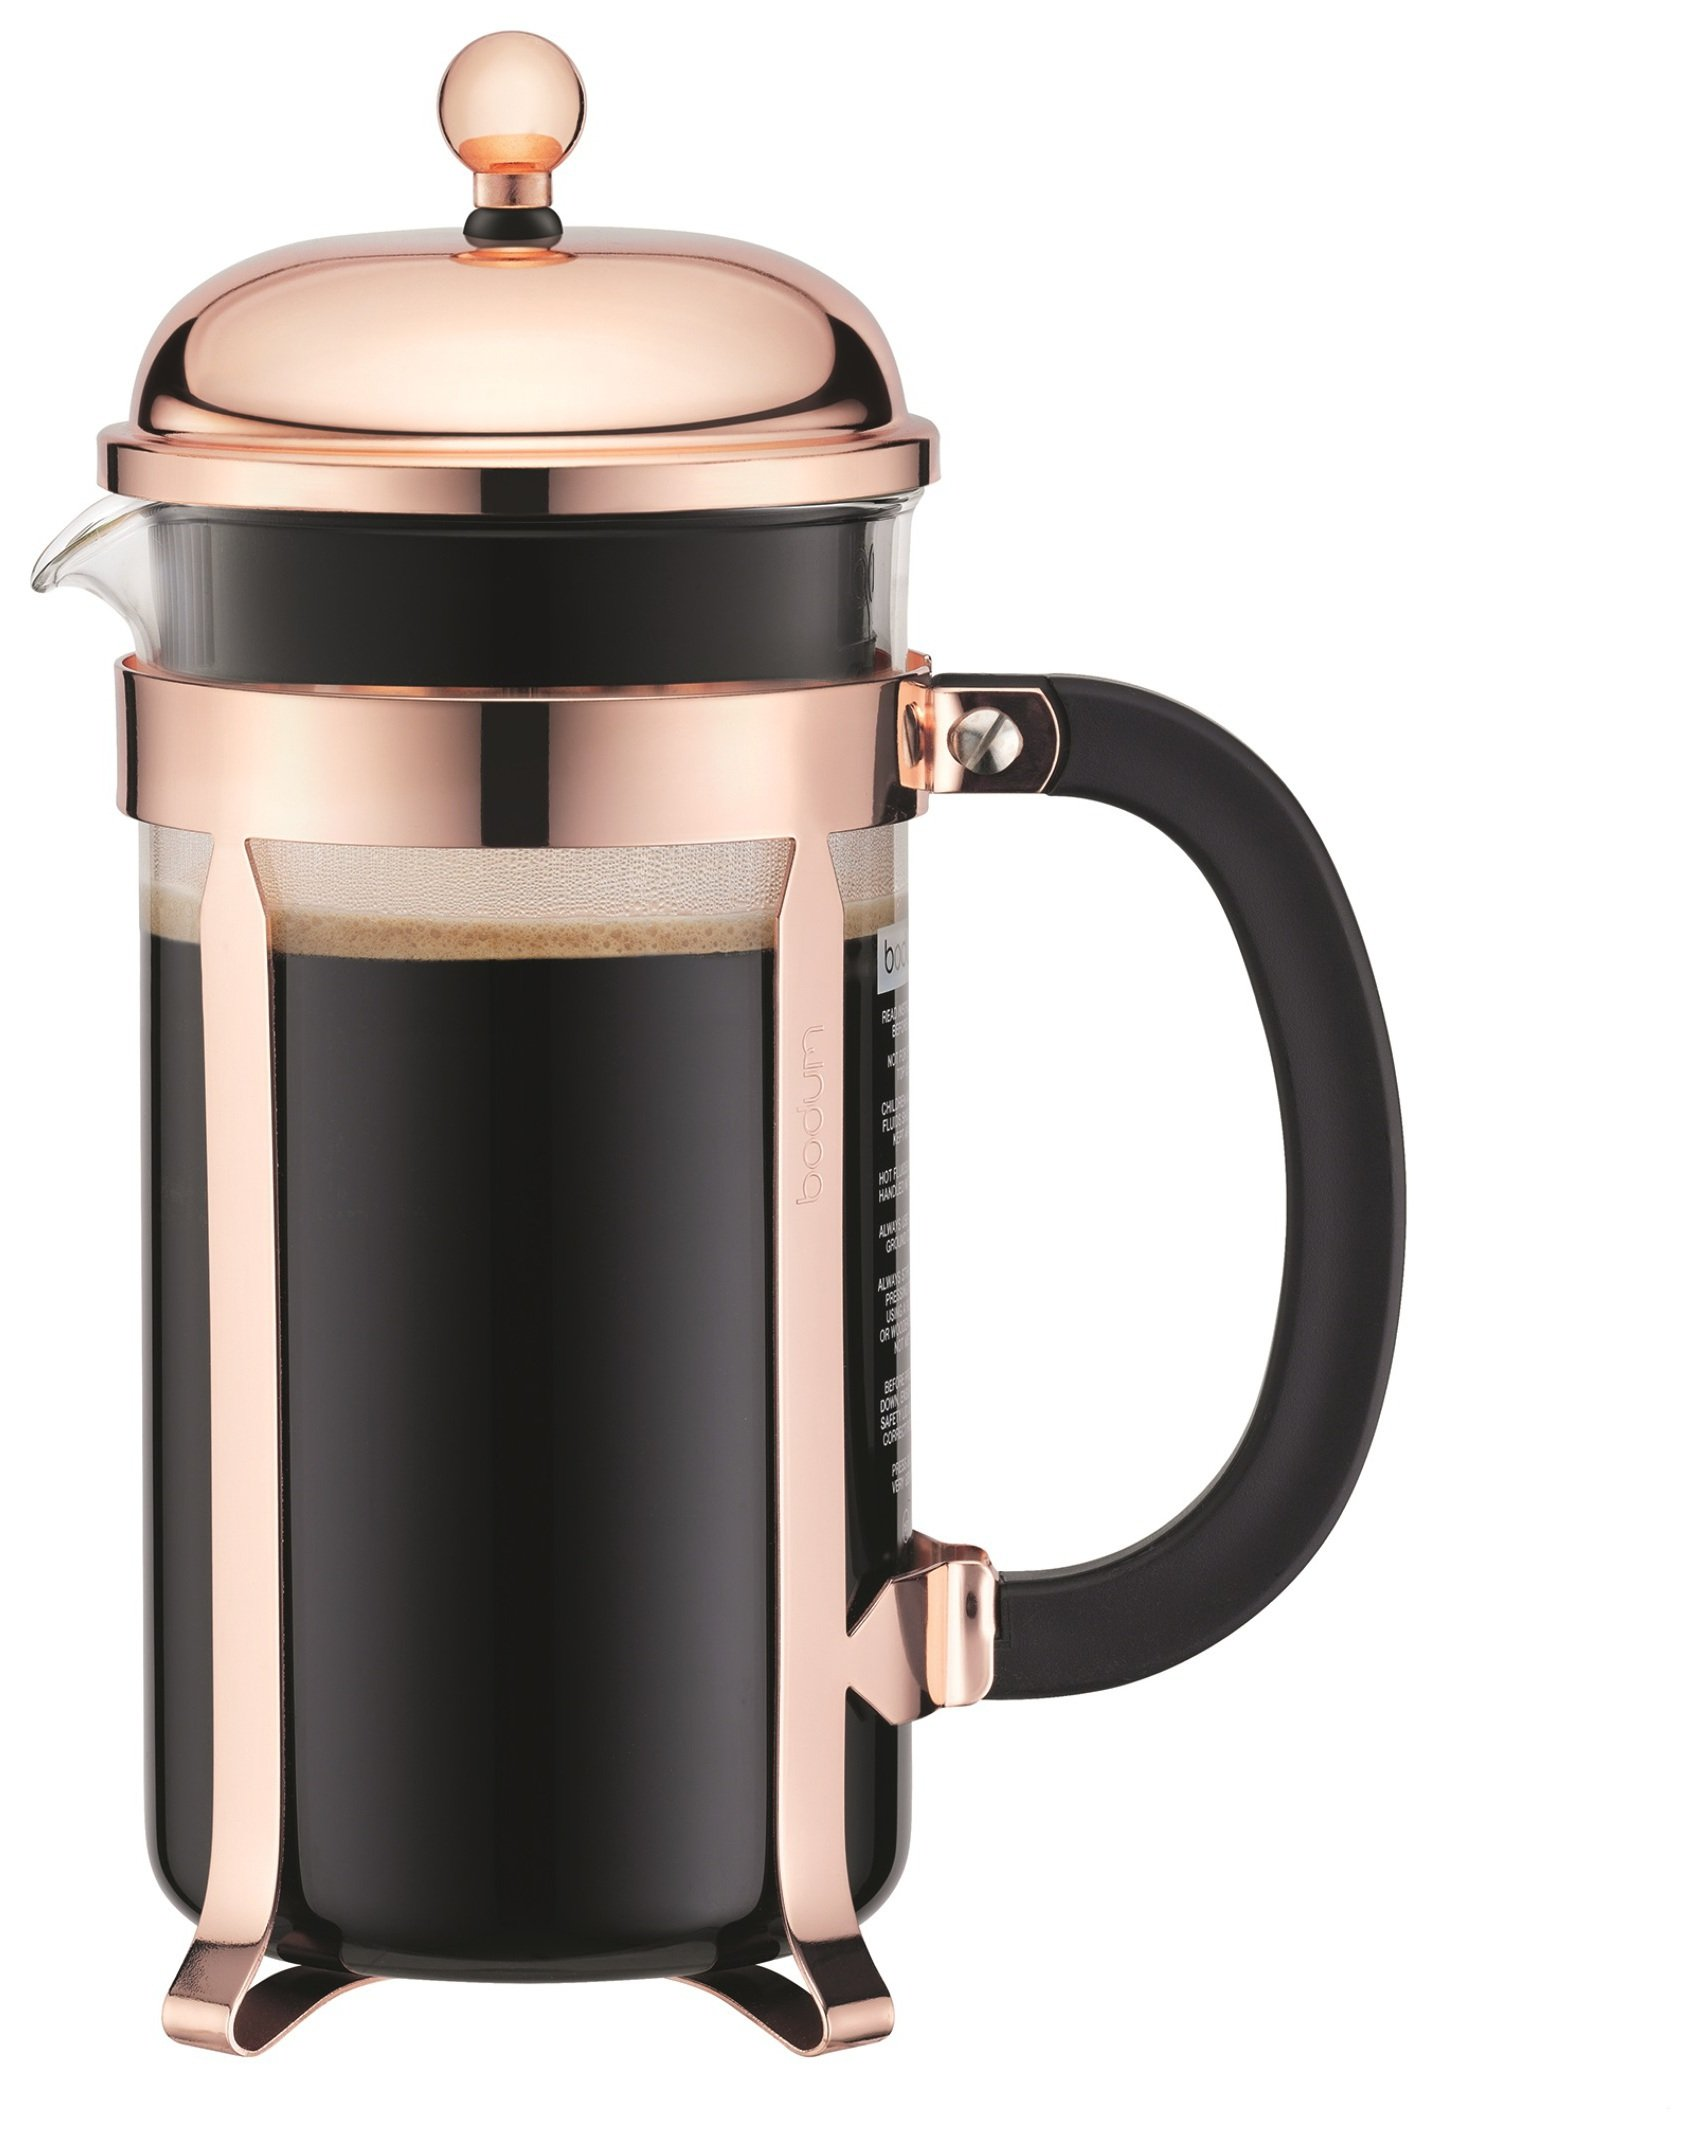 Image of Bodum Chambord 8 Cup Coffee Maker - Copper